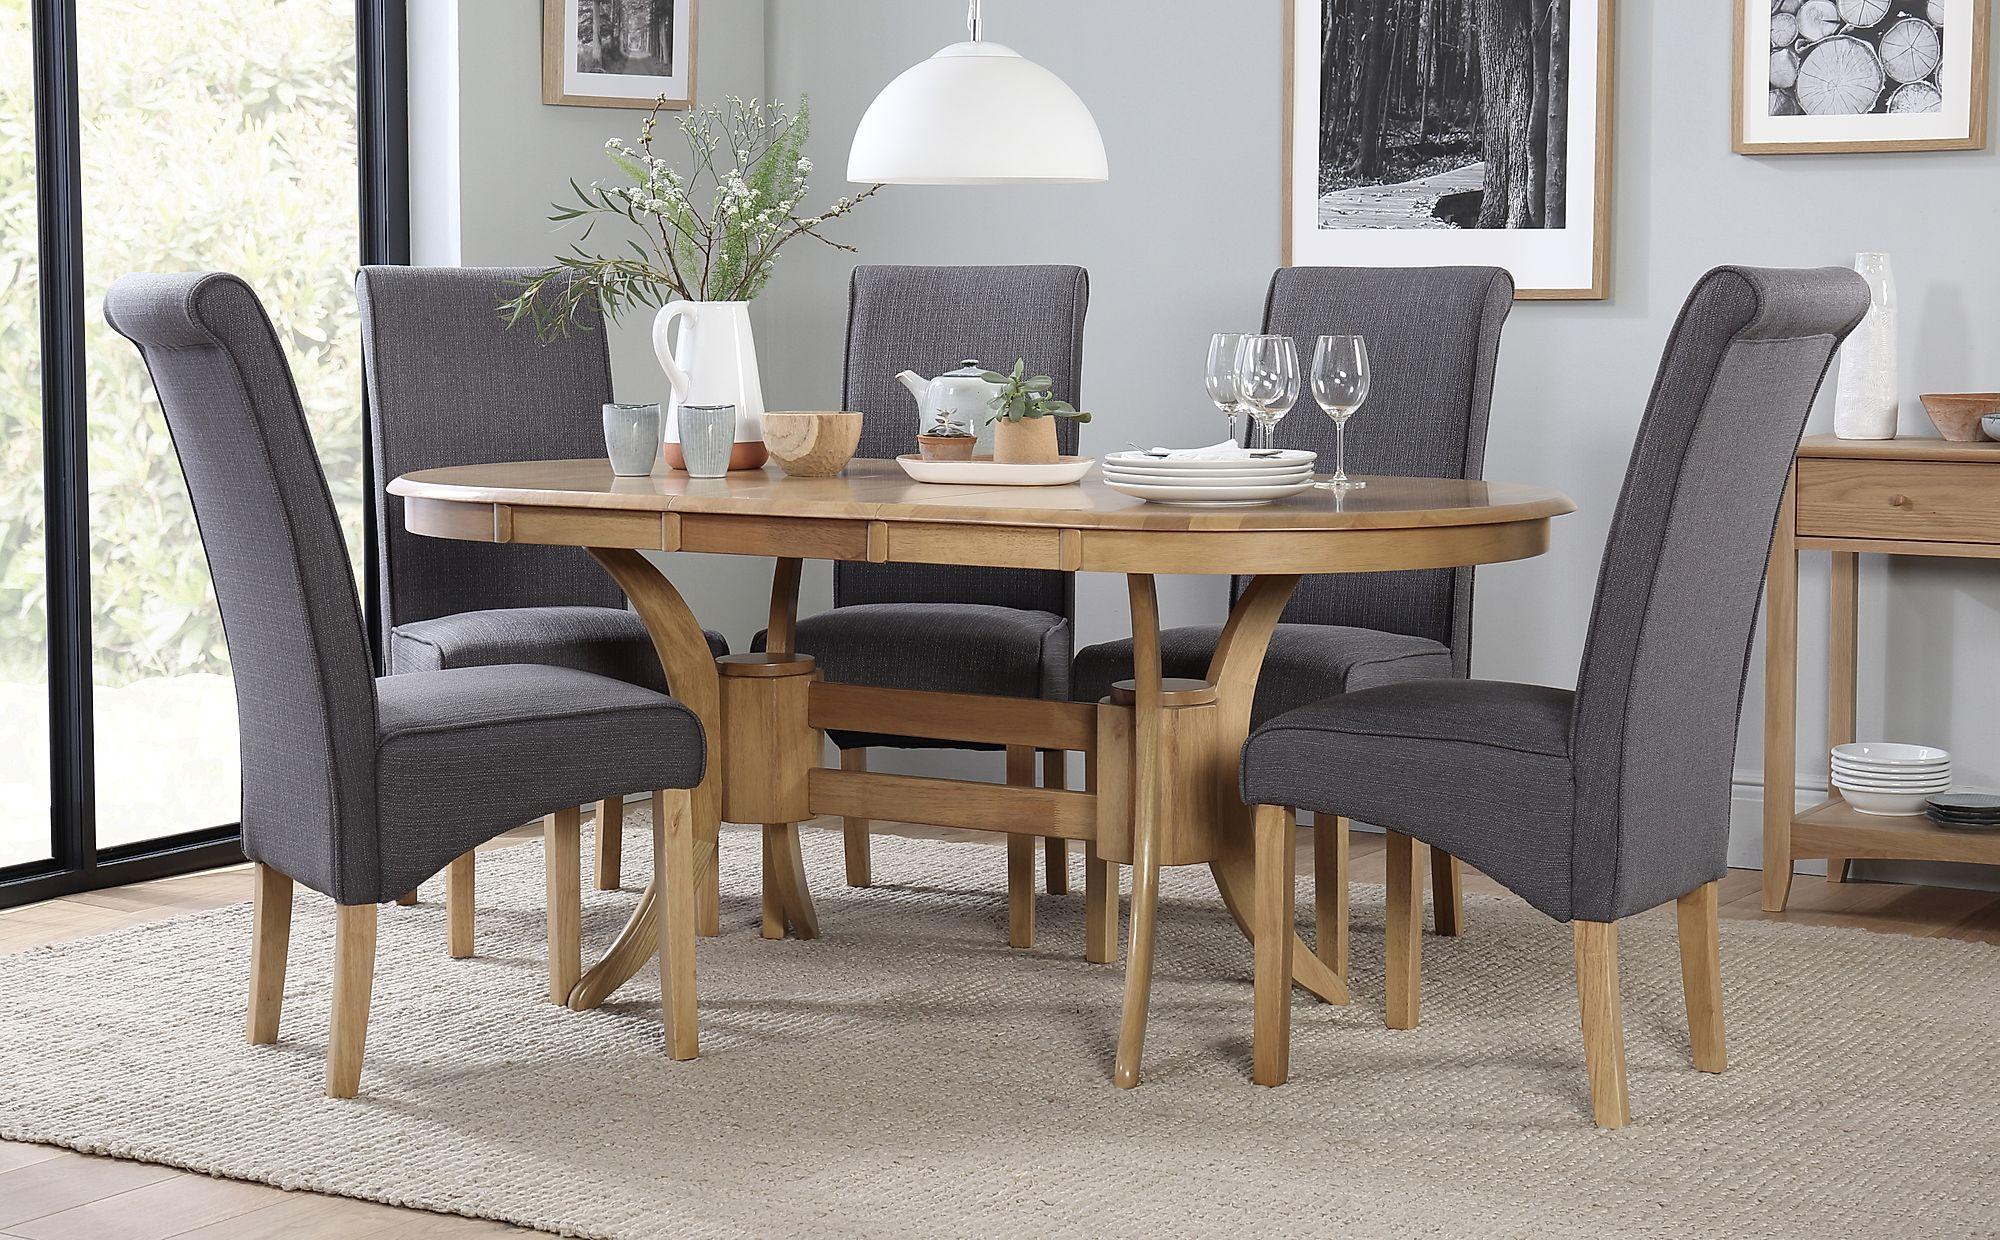 Townhouse Oval Oak Extending Dining Table with 4 Stamford ...